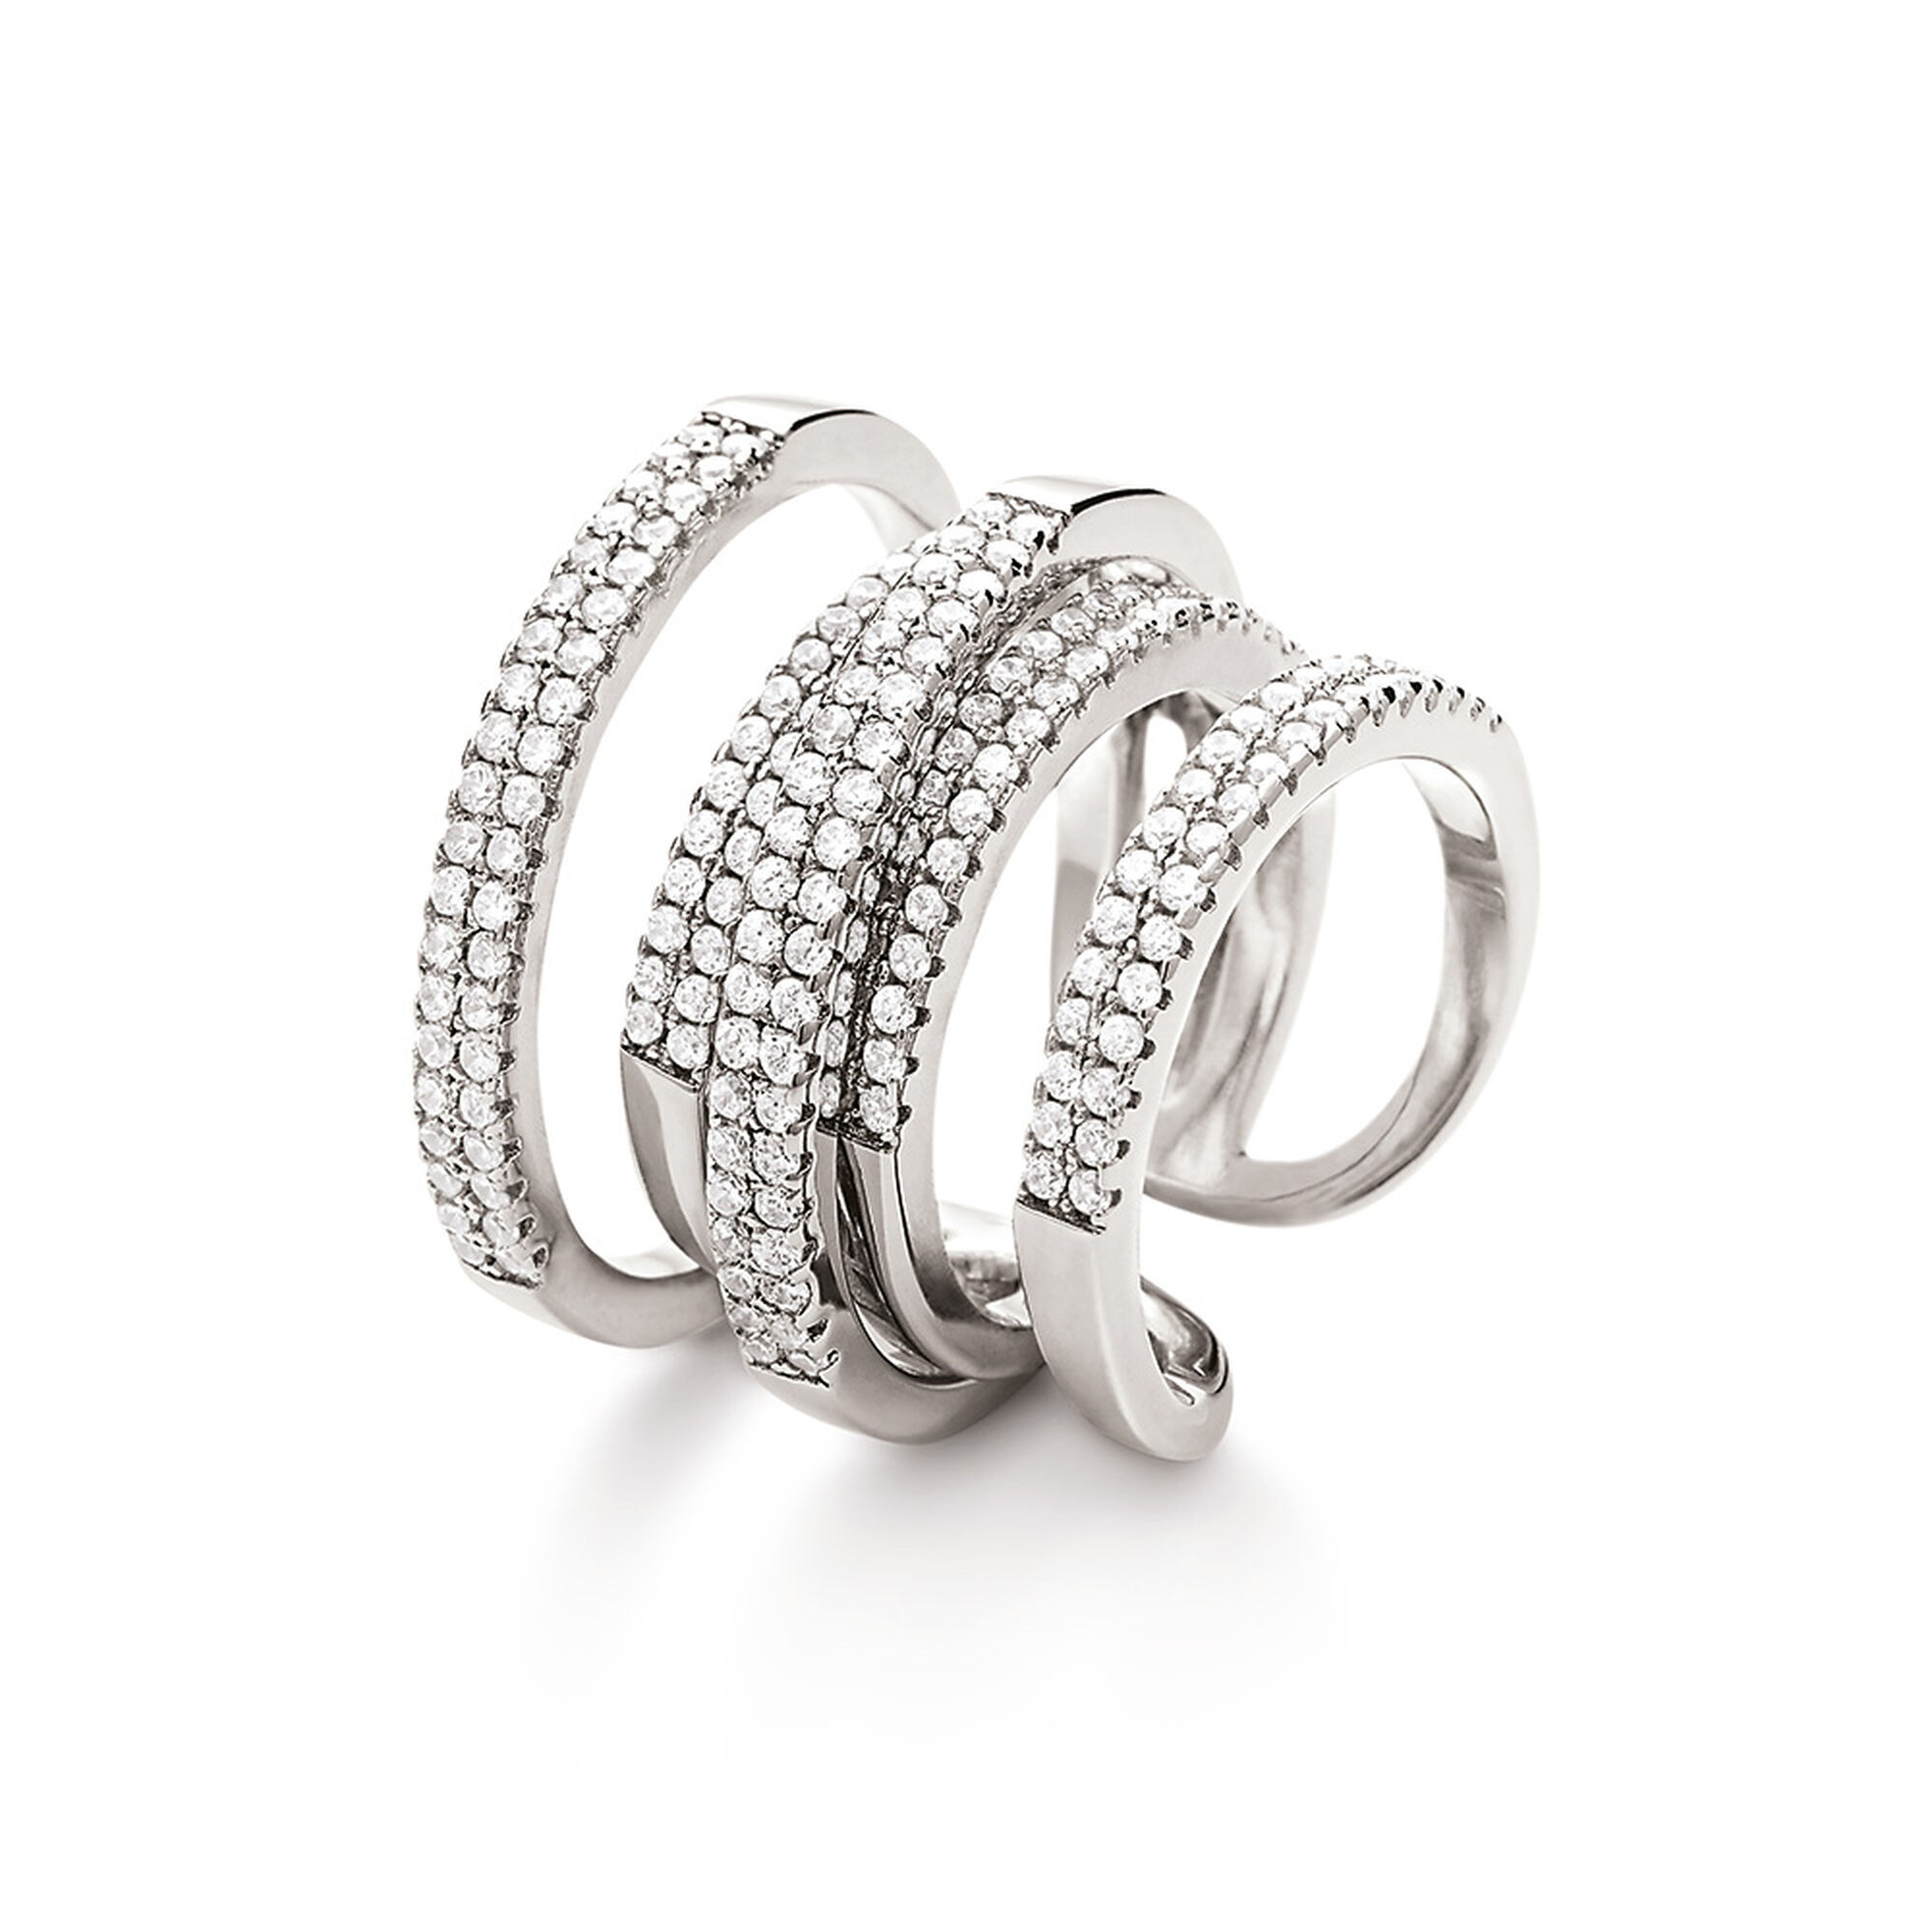 p asp split rings rhodium plated